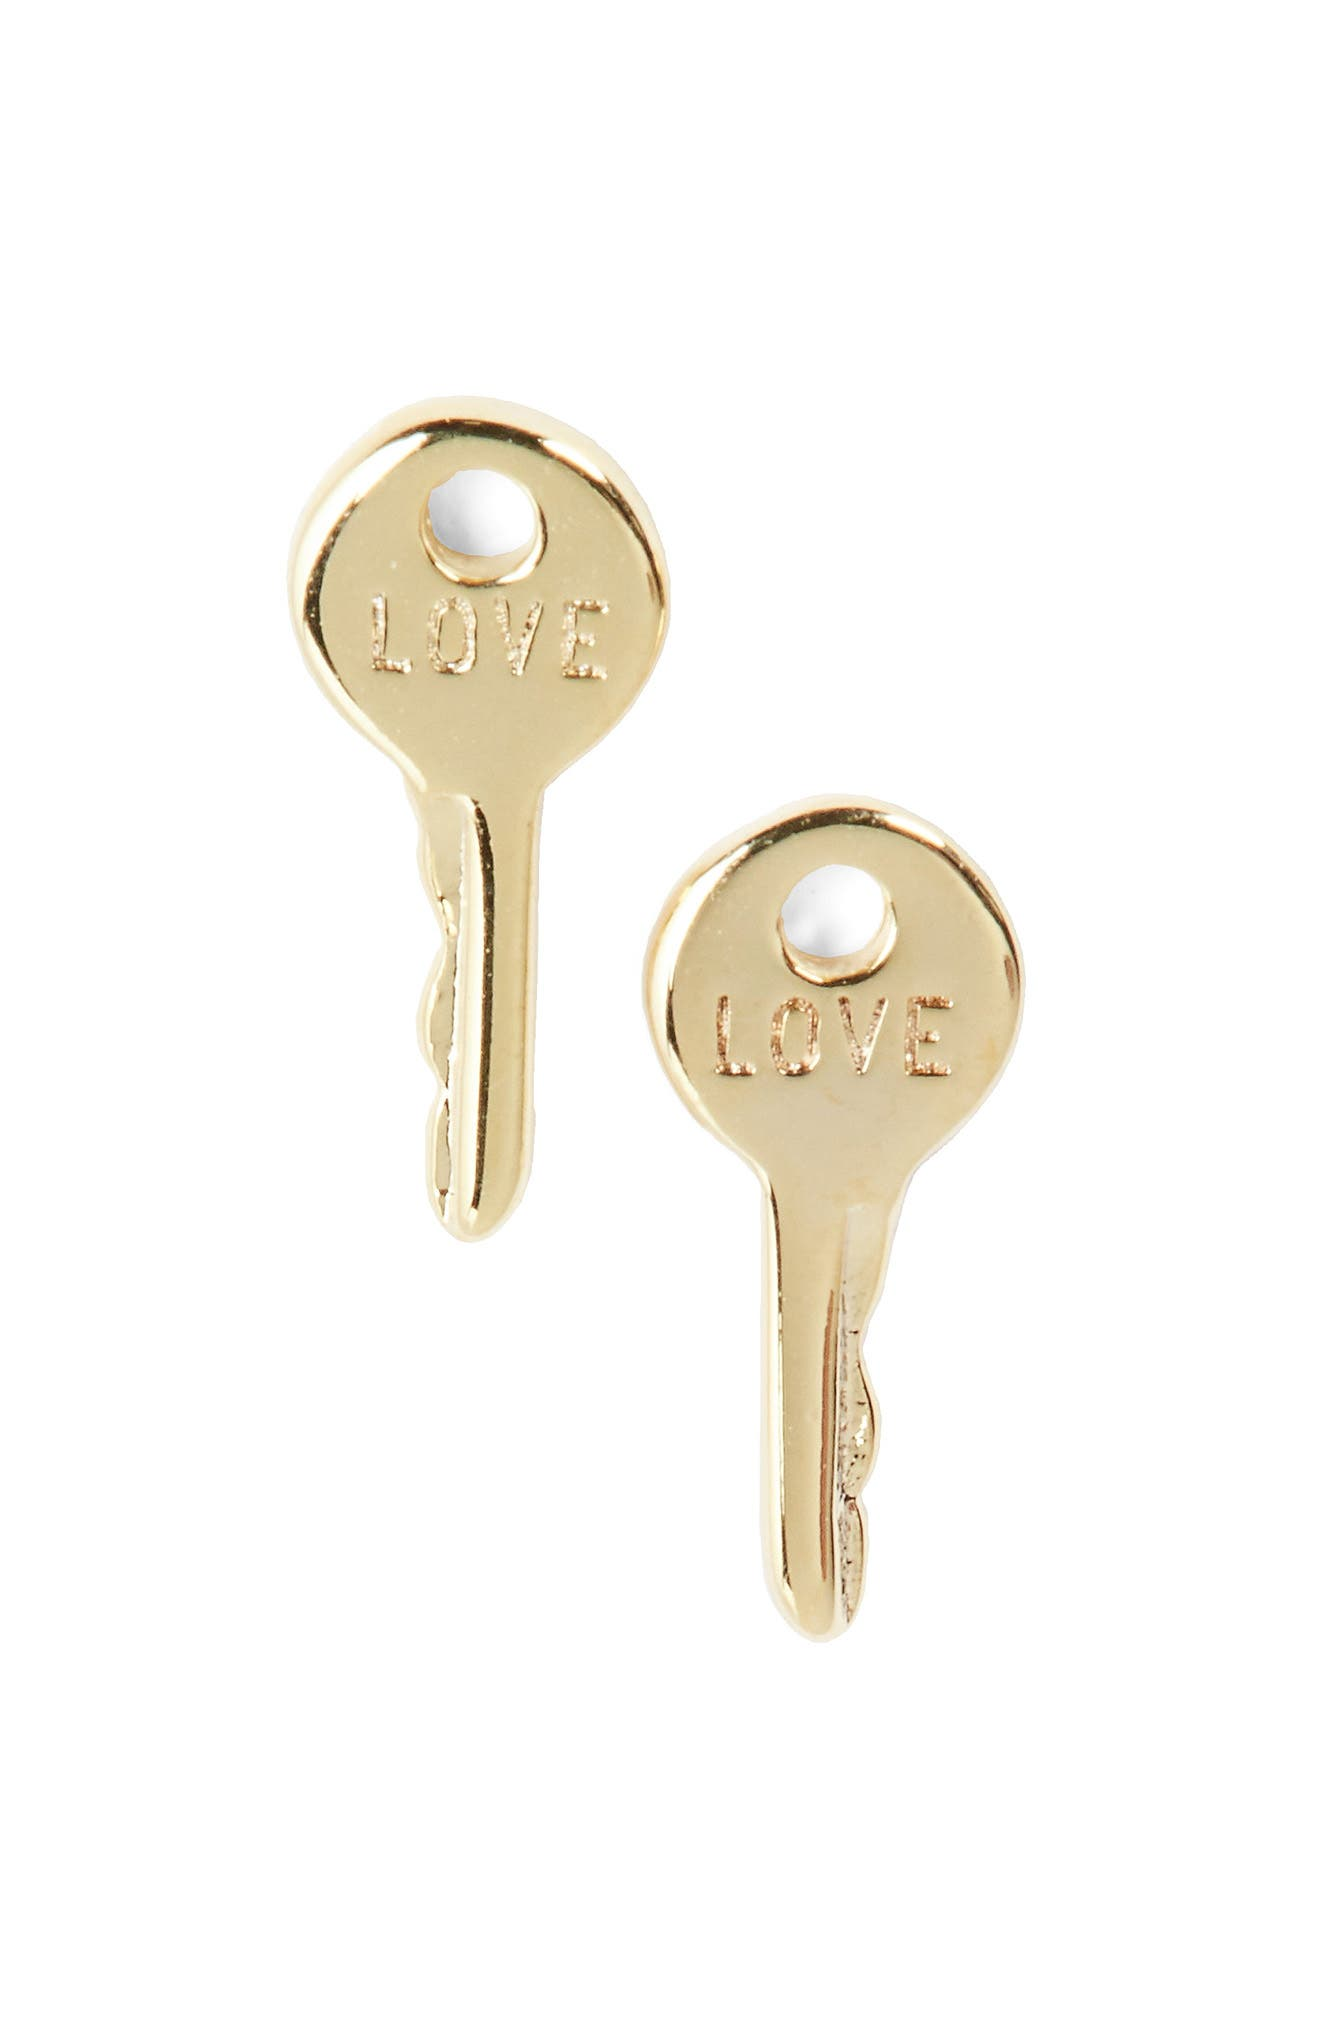 The Giving Keys Love Mini Stud Earrings